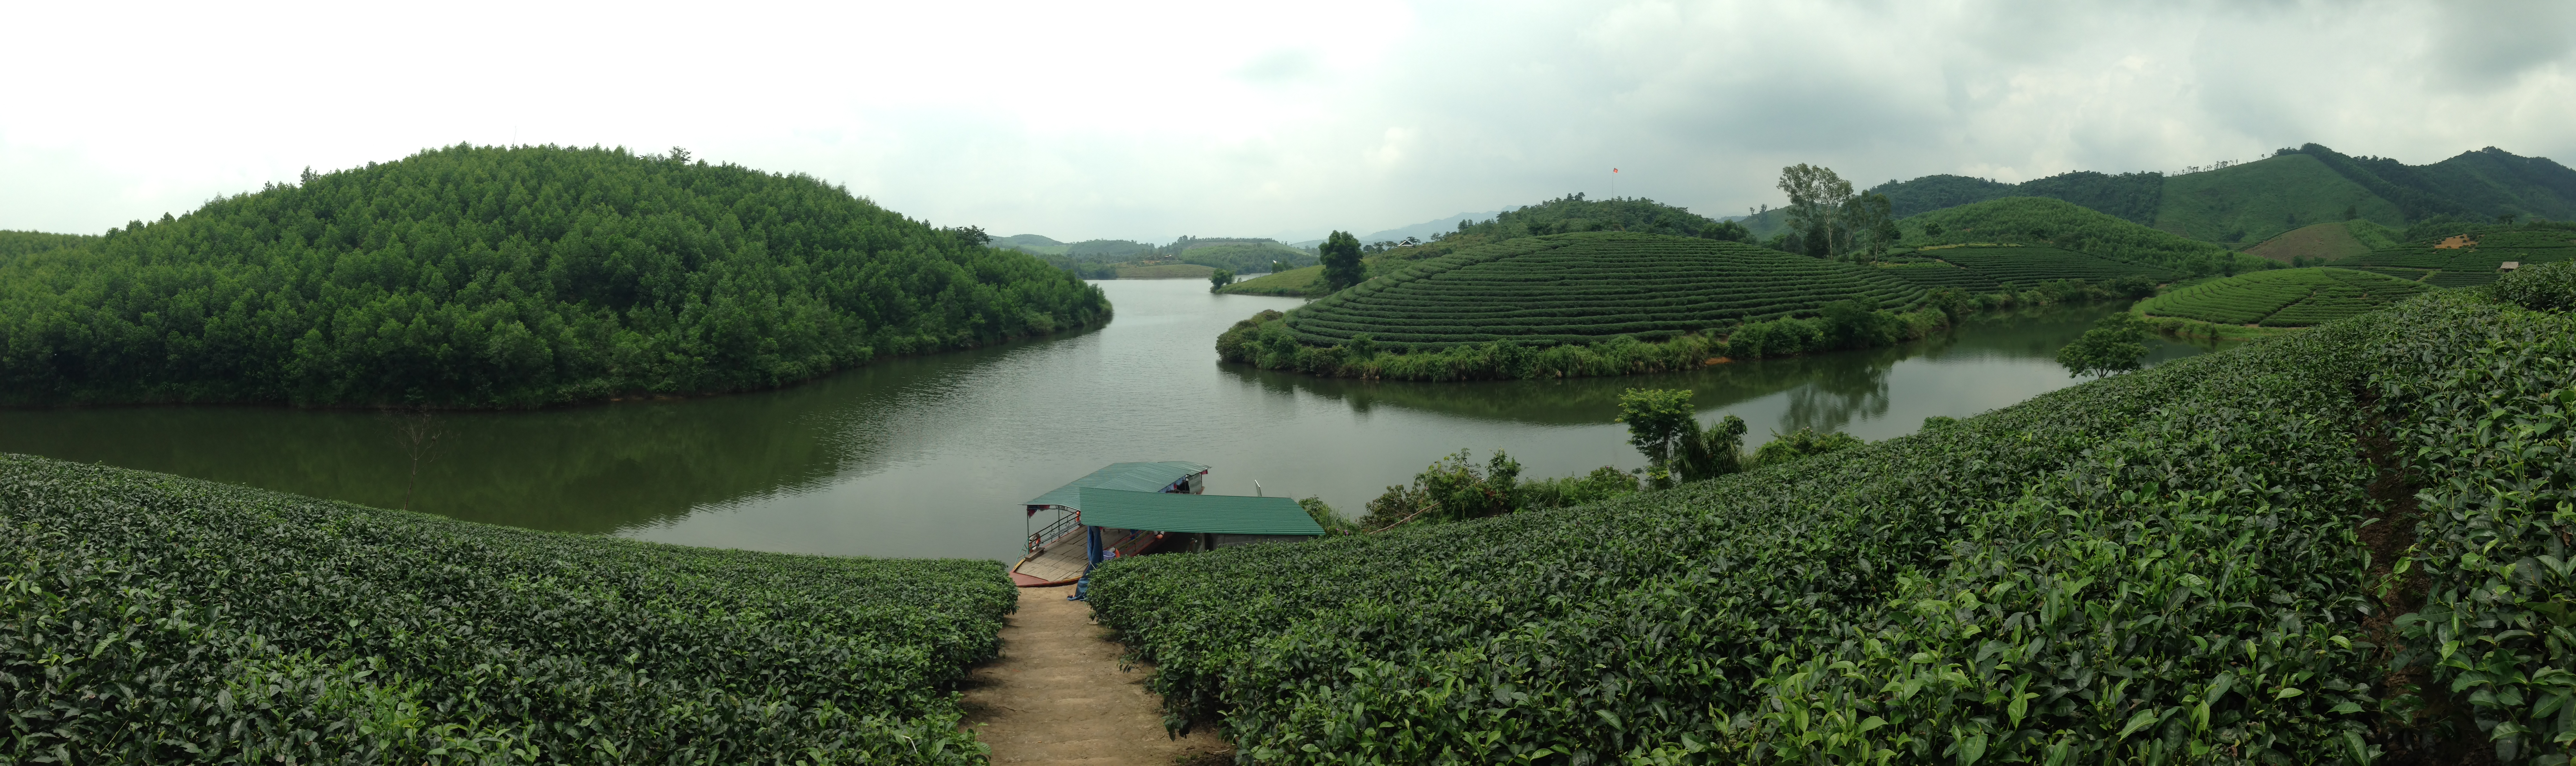 10 things to do in Vinh and Nghe An, Vietnam